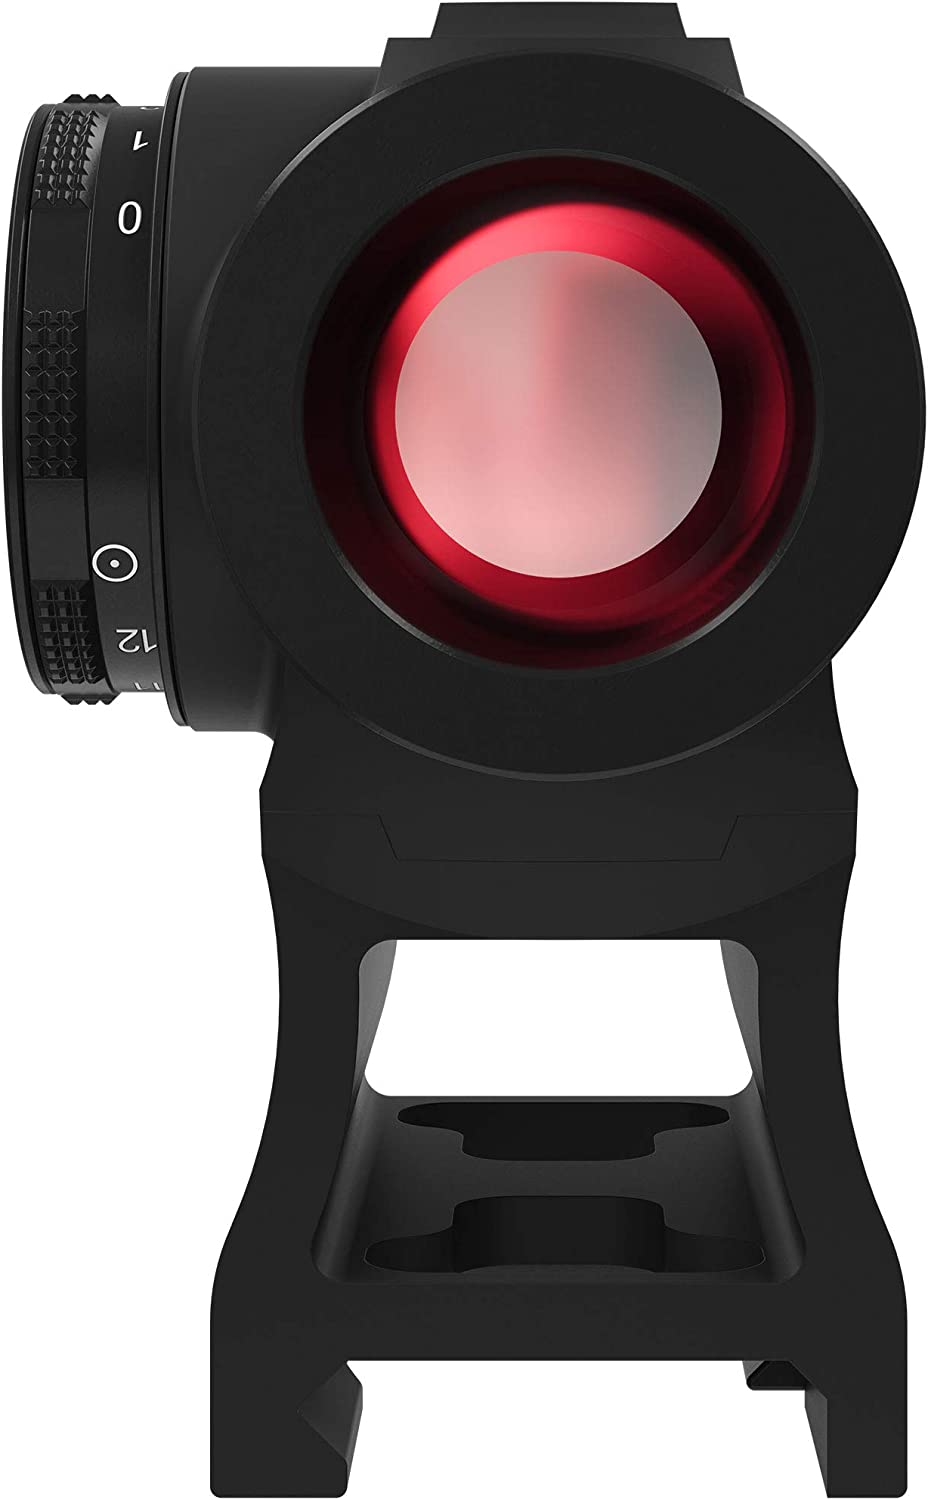 Holosun HS403R Microdot Red DOT Sight with 2MOA DOT Reticle Picatinny//Weaver Rail for Hunting 70142129 New Rheostat dial to Adjust Brightness Settings Sport Shooting And a/… Black